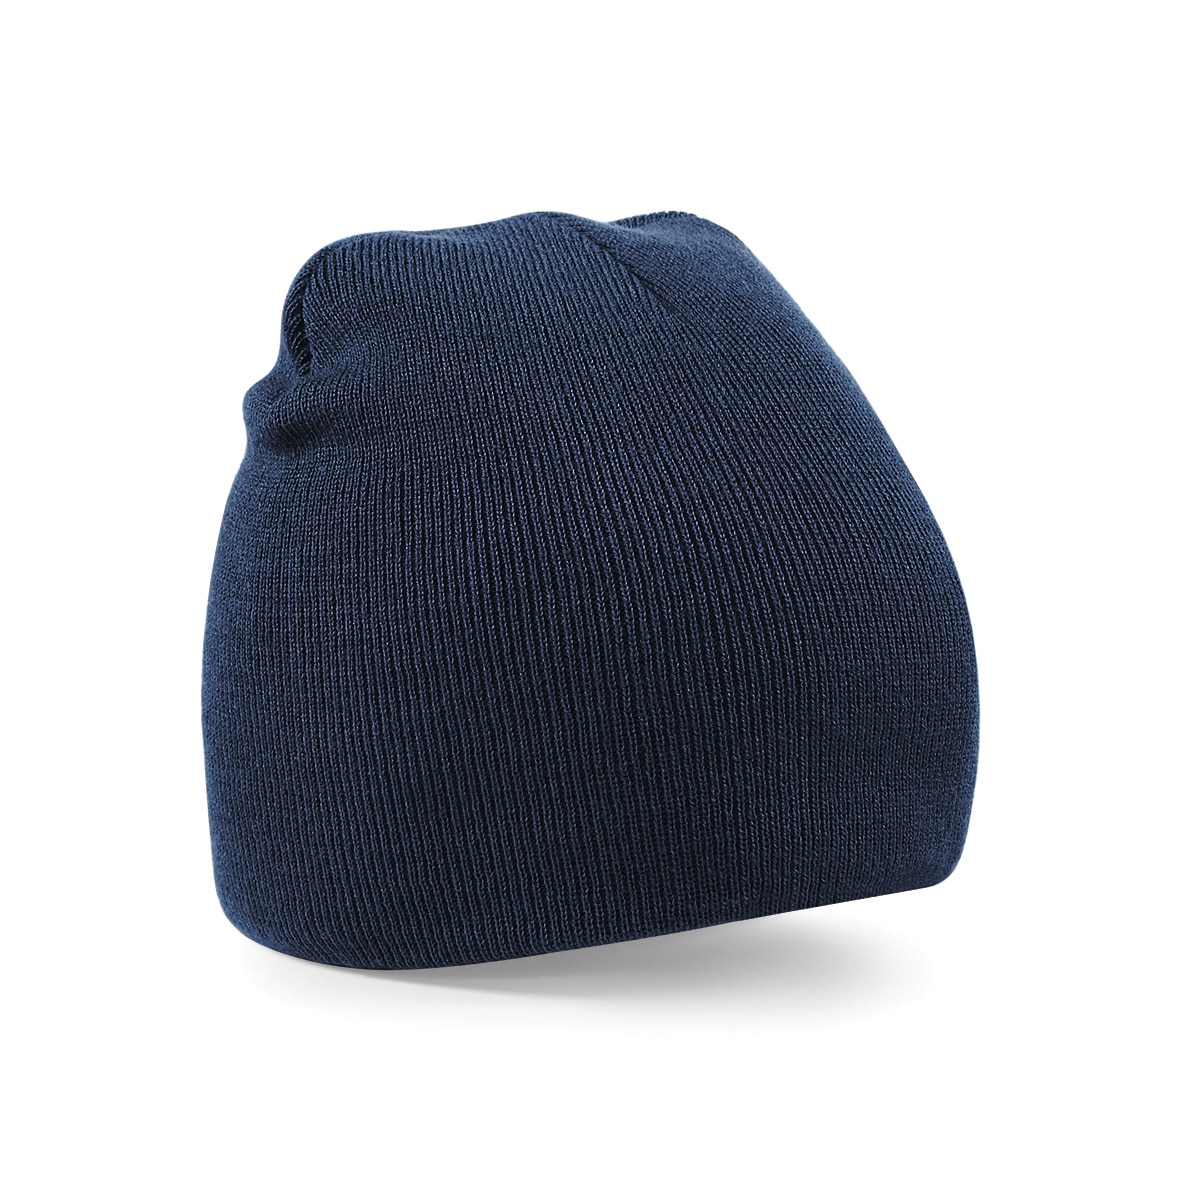 Navy Blue Embroidered Personalised Beanies from Jageto Embroidery and Print in Essex, UK